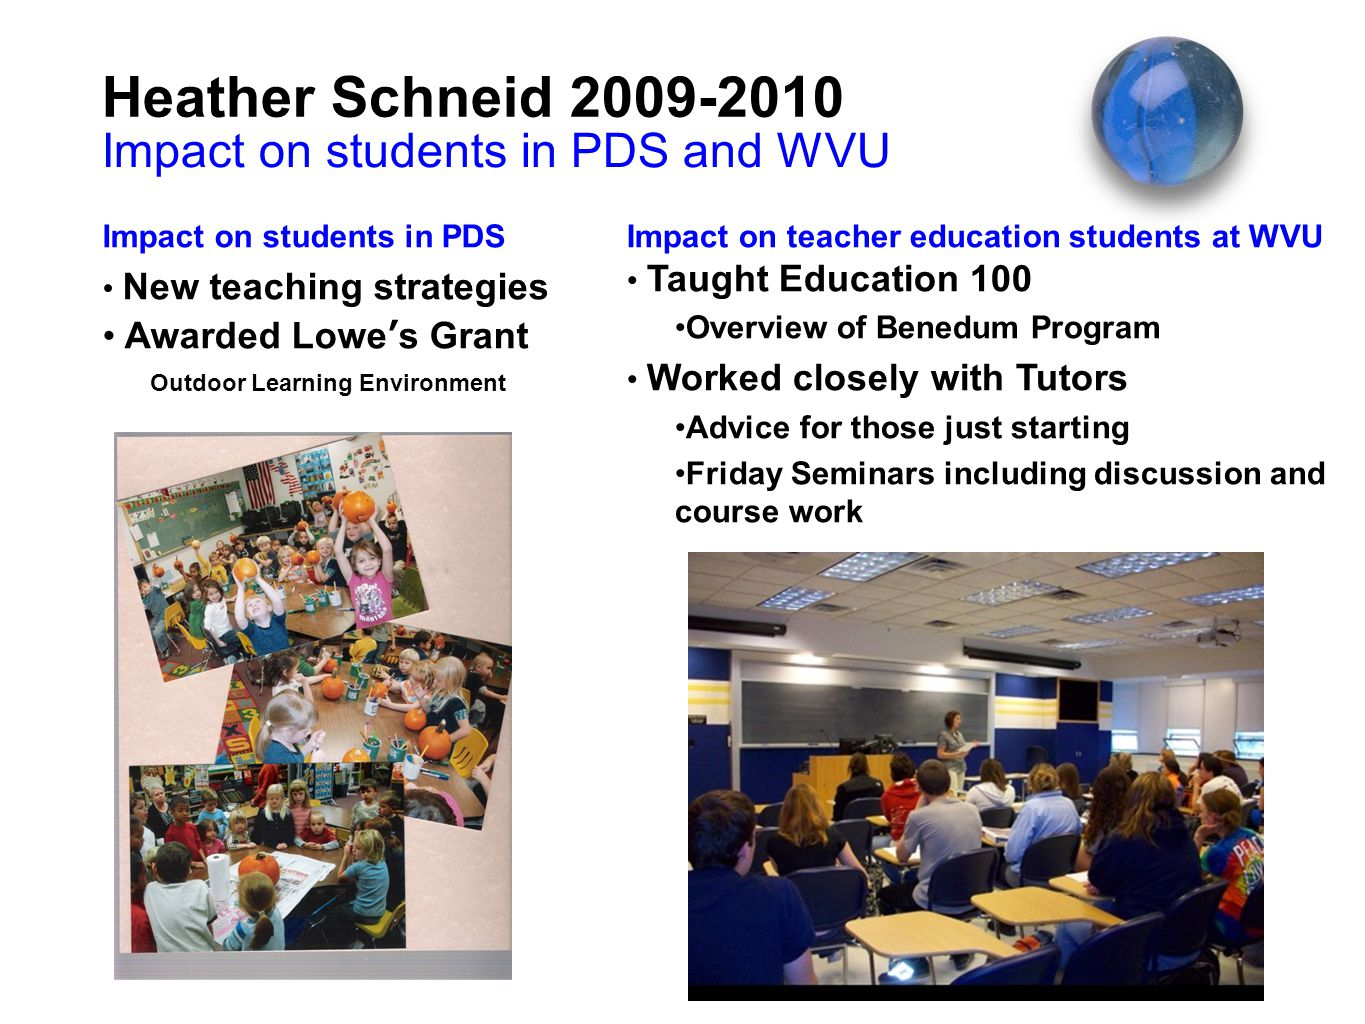 Heather Schneid 2009-2010 Impact on students in PDS and WVU